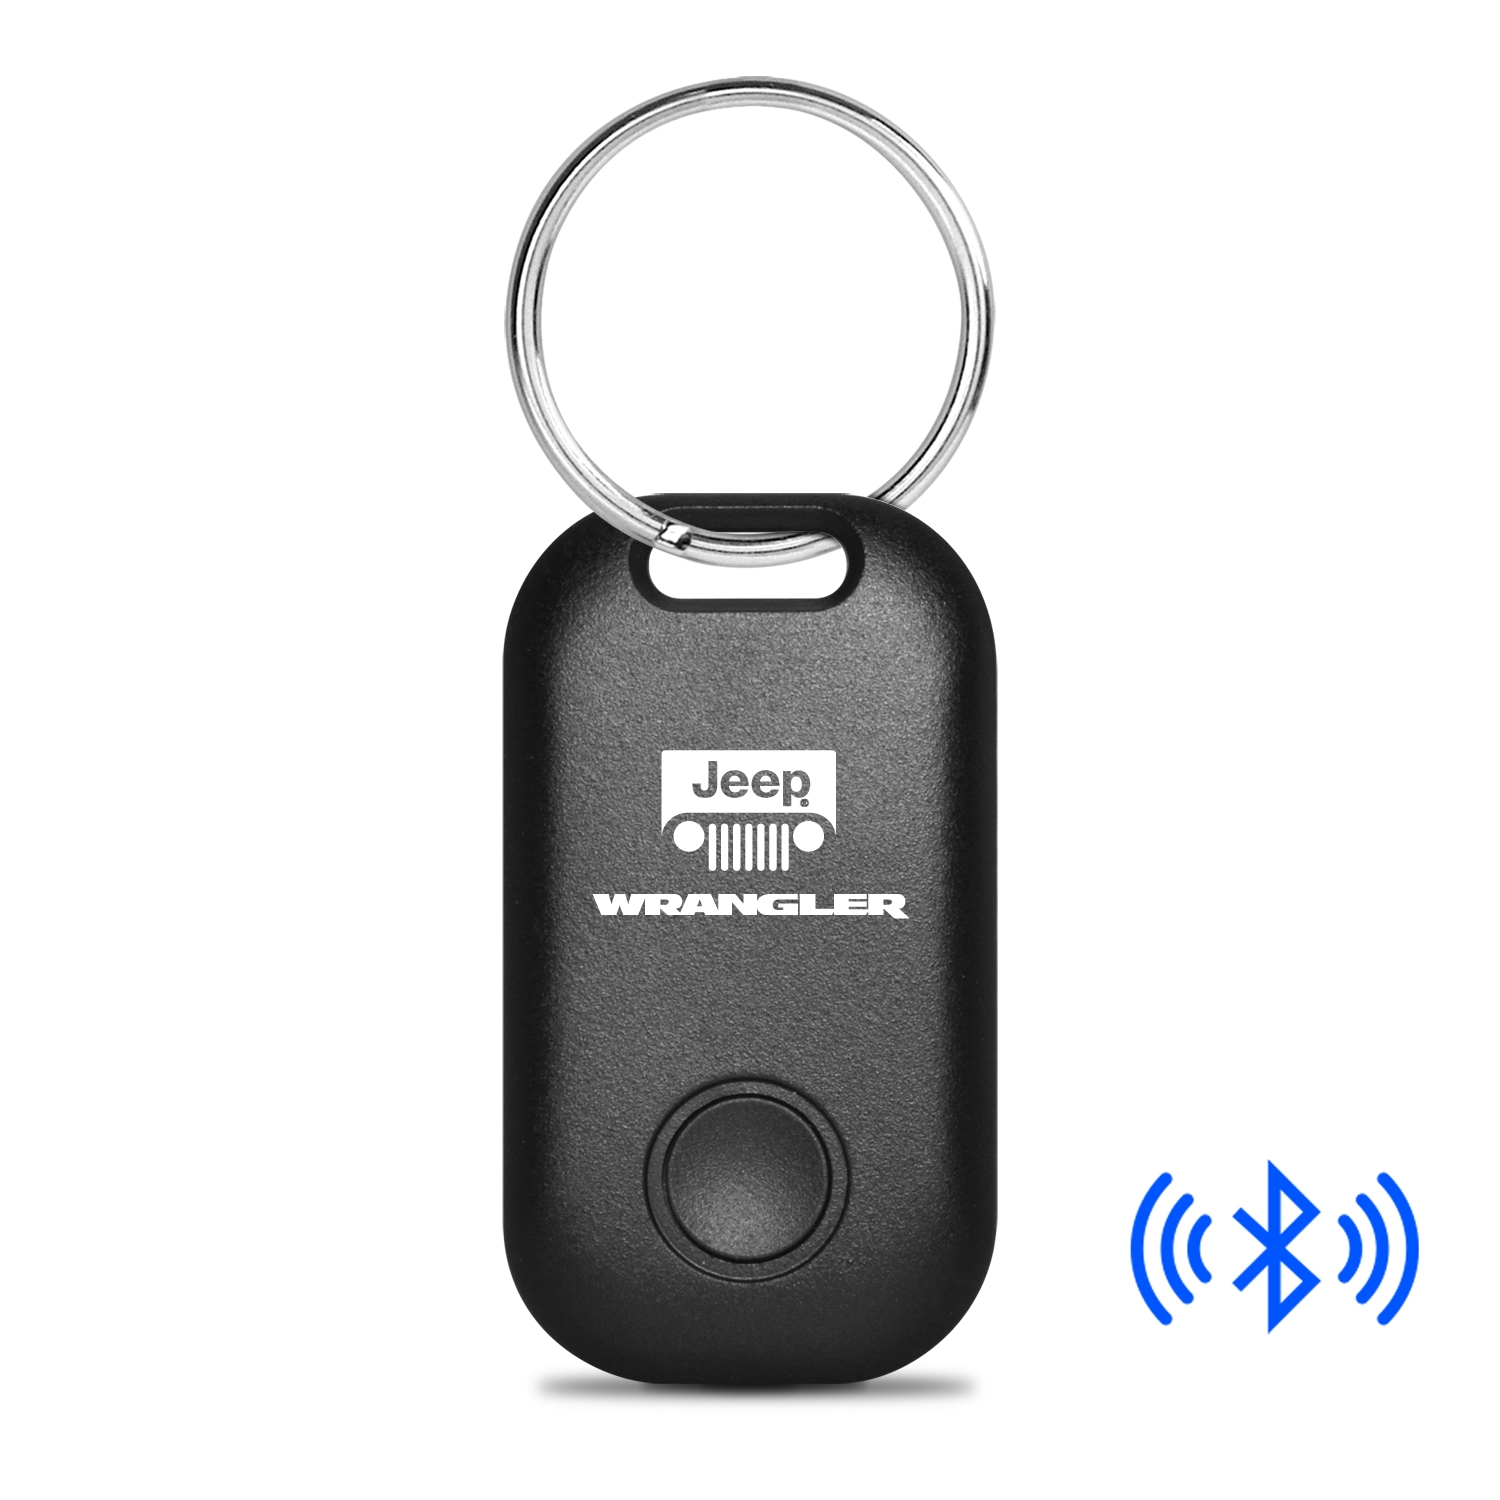 Jeep Wrangler Bluetooth Smart Key Finder Black Key Chain